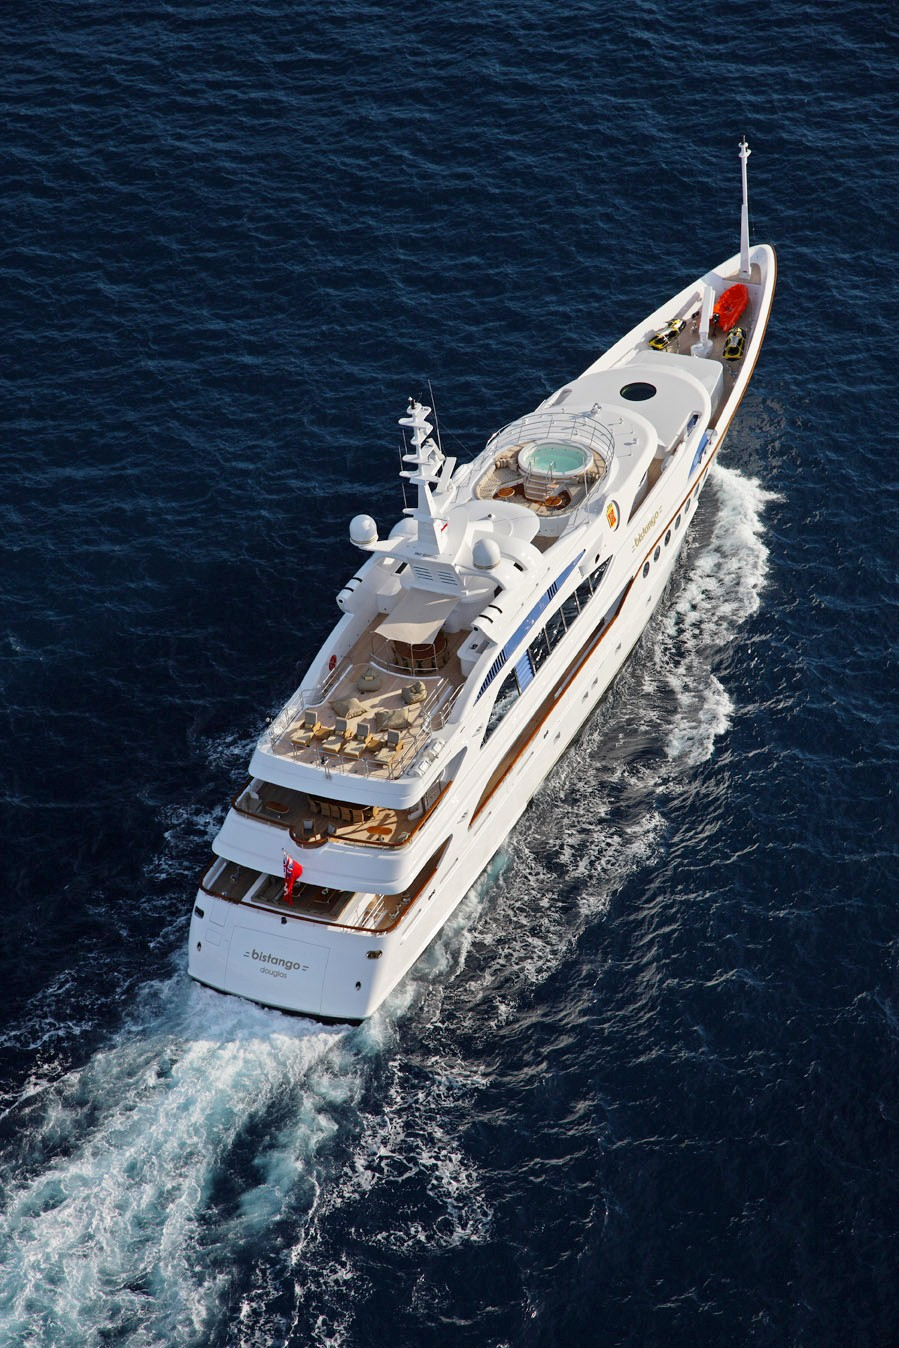 Luxury Yacht Engine Room: Stefano Natucci Image Gallery – Luxury Yacht Browser